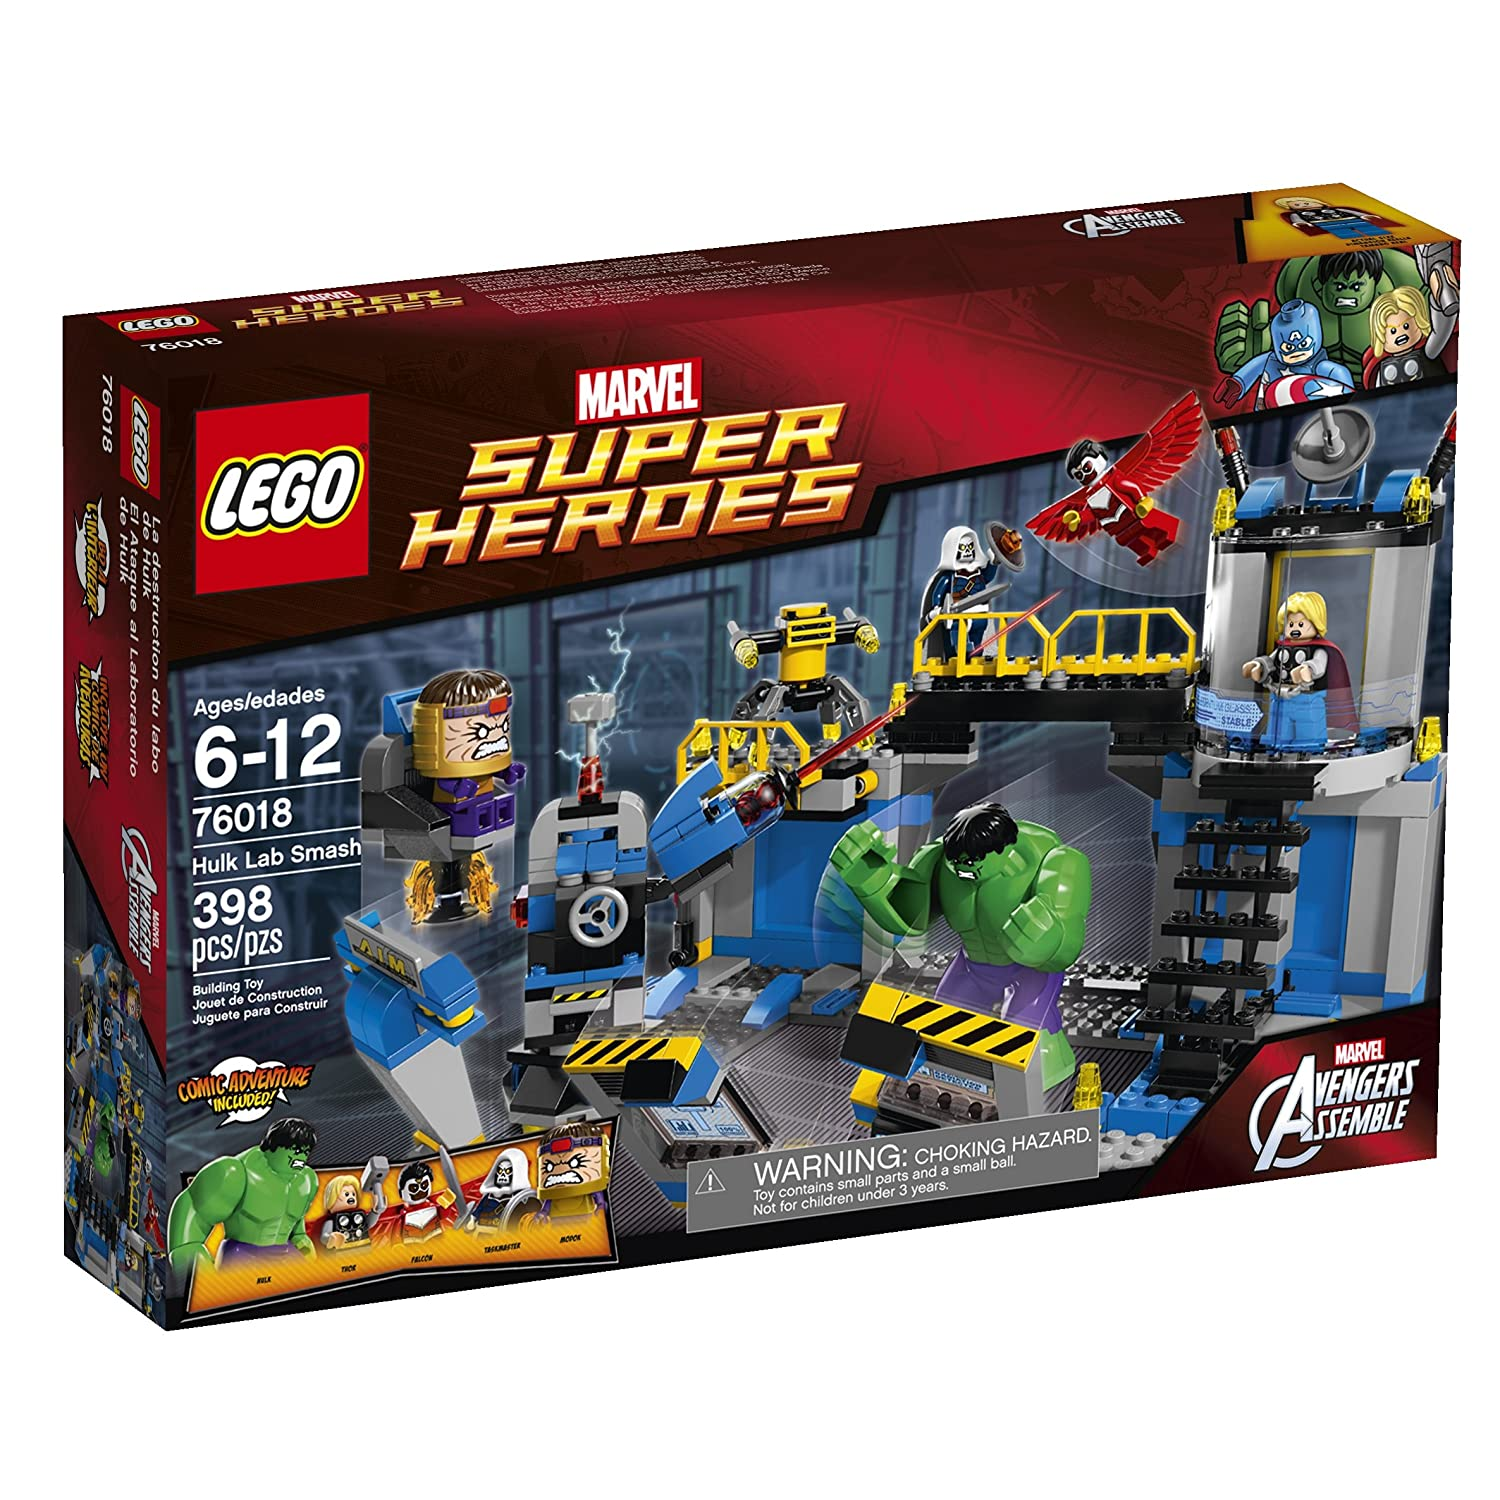 Top 9 Best LEGO Hulk Sets Reviews in 2020 2